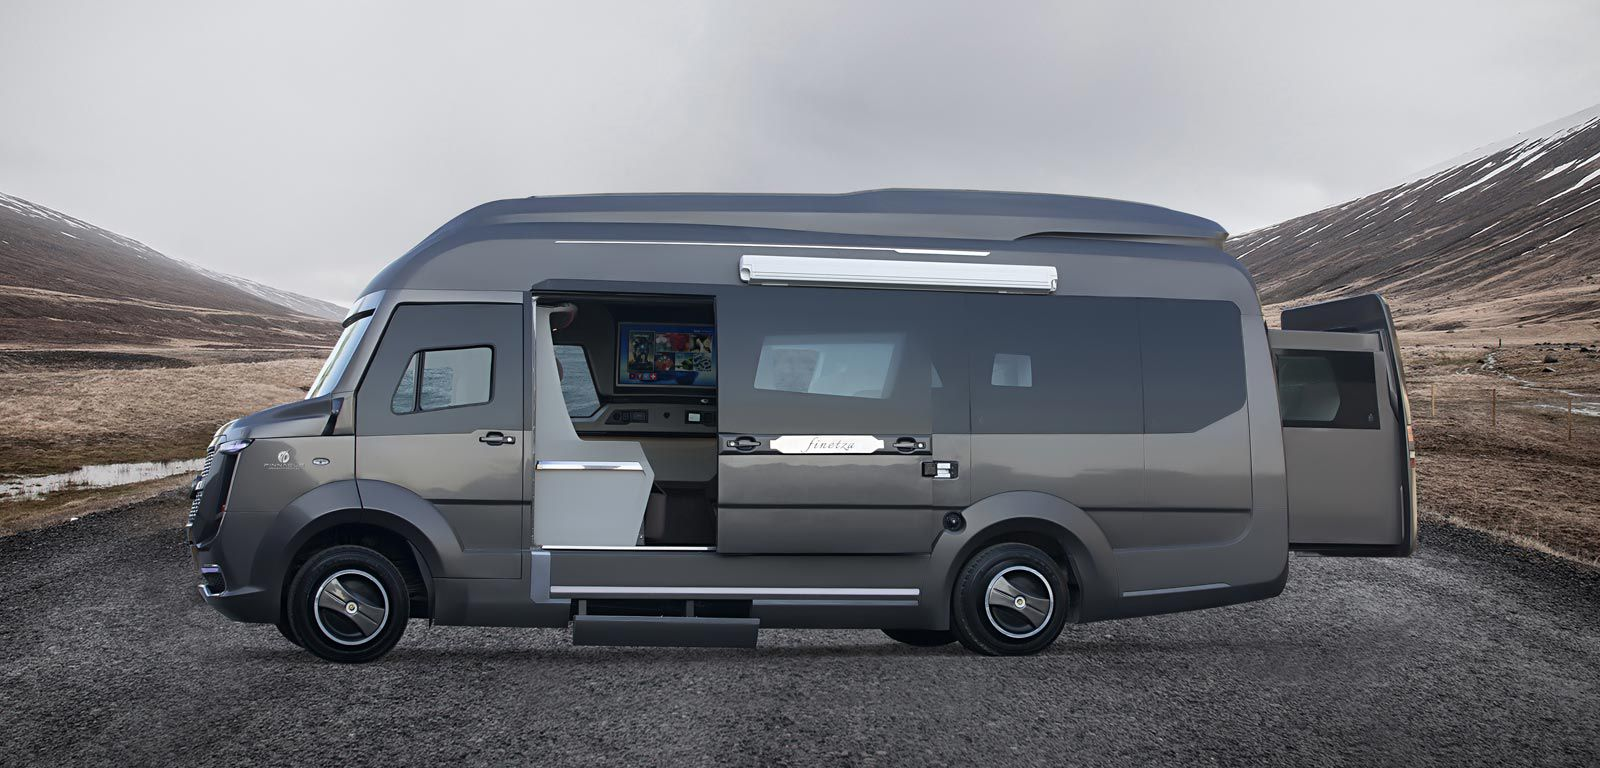 Side view of the luxury rv Finetza, with pop out bedroom area sliding out from the back of the truck.